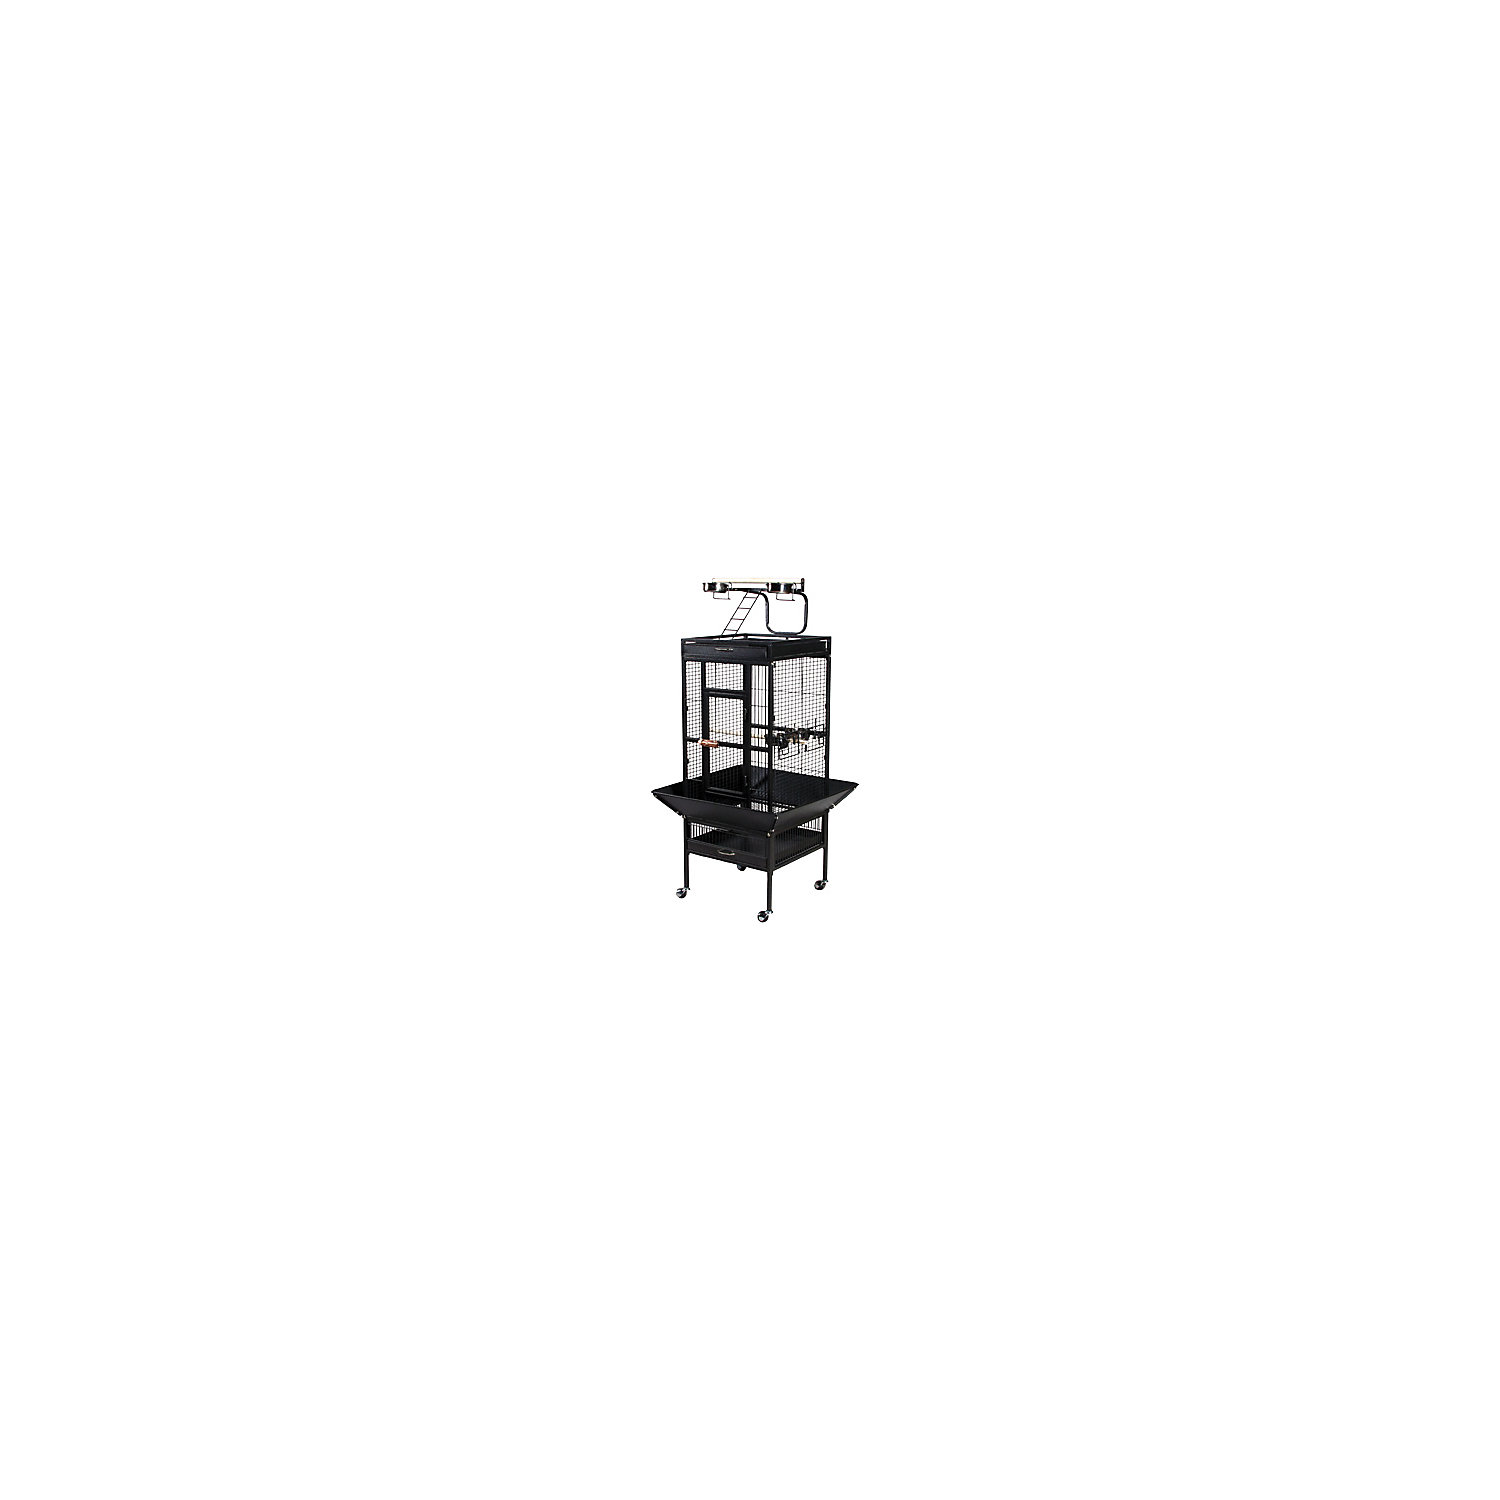 Prevue Pet Products Cages Amp Stands Upc Amp Barcode